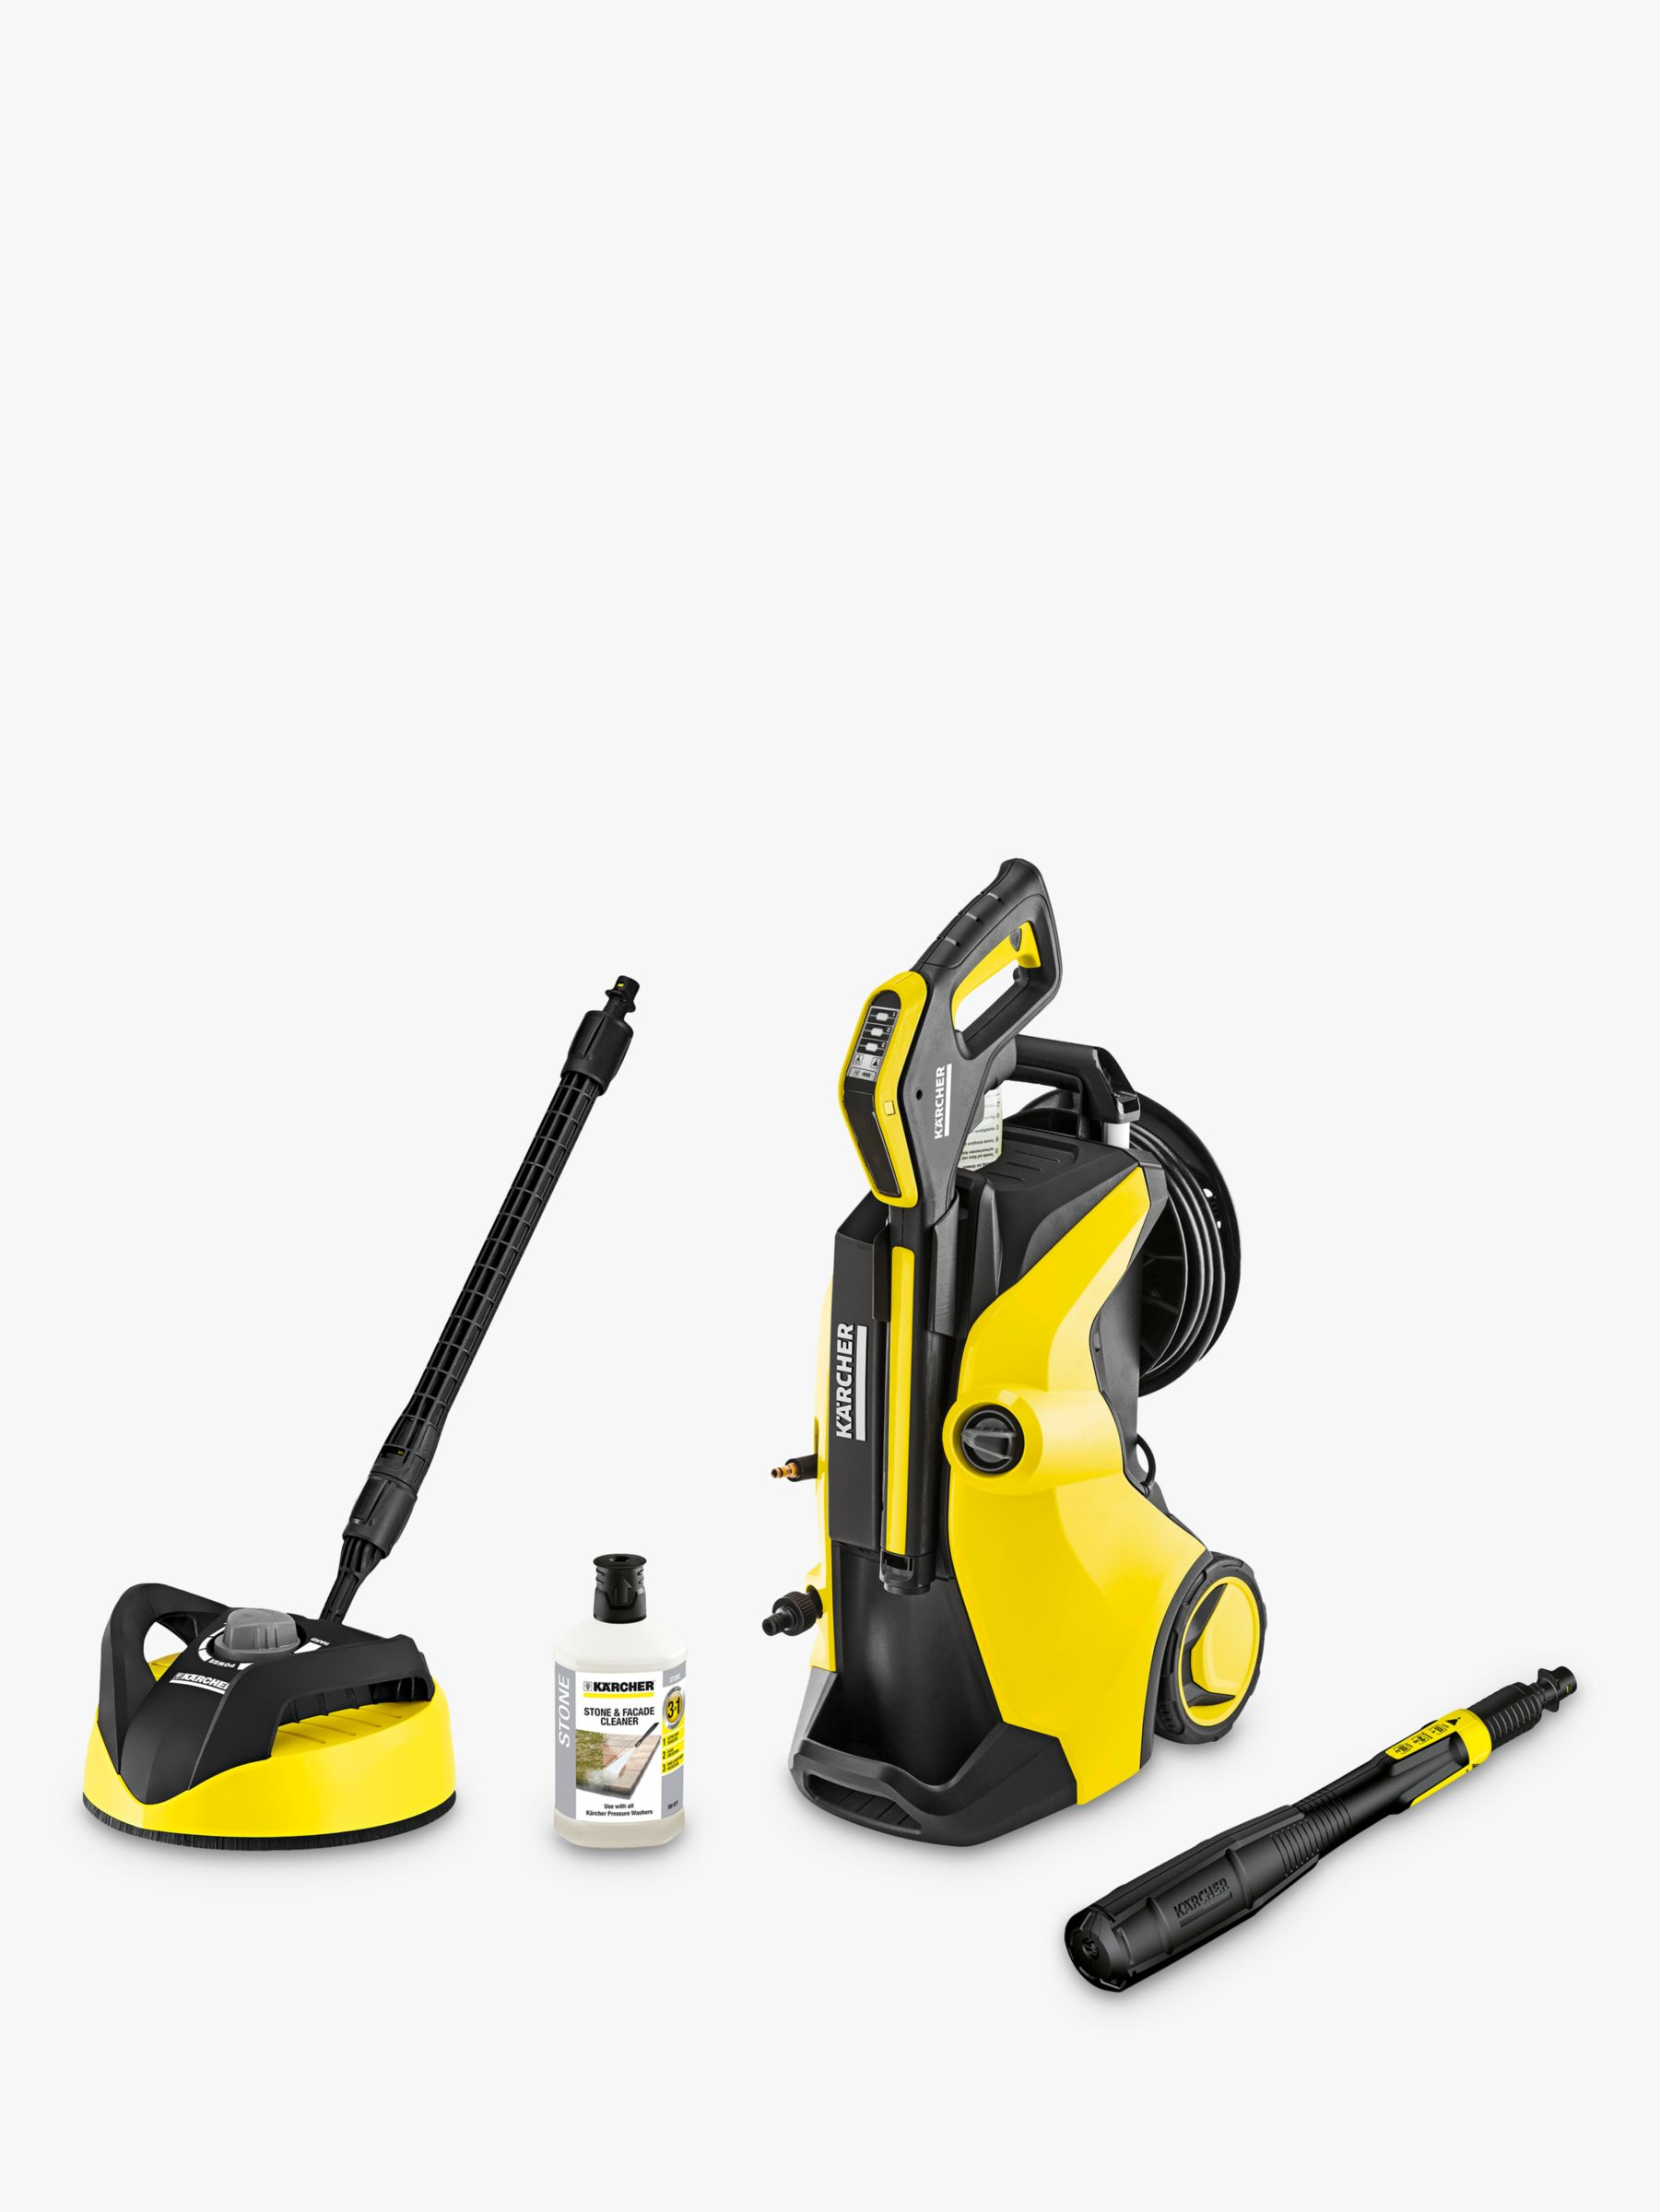 North Star Steam Cleaner Wiring Diagram | Best Ebook 2019 on